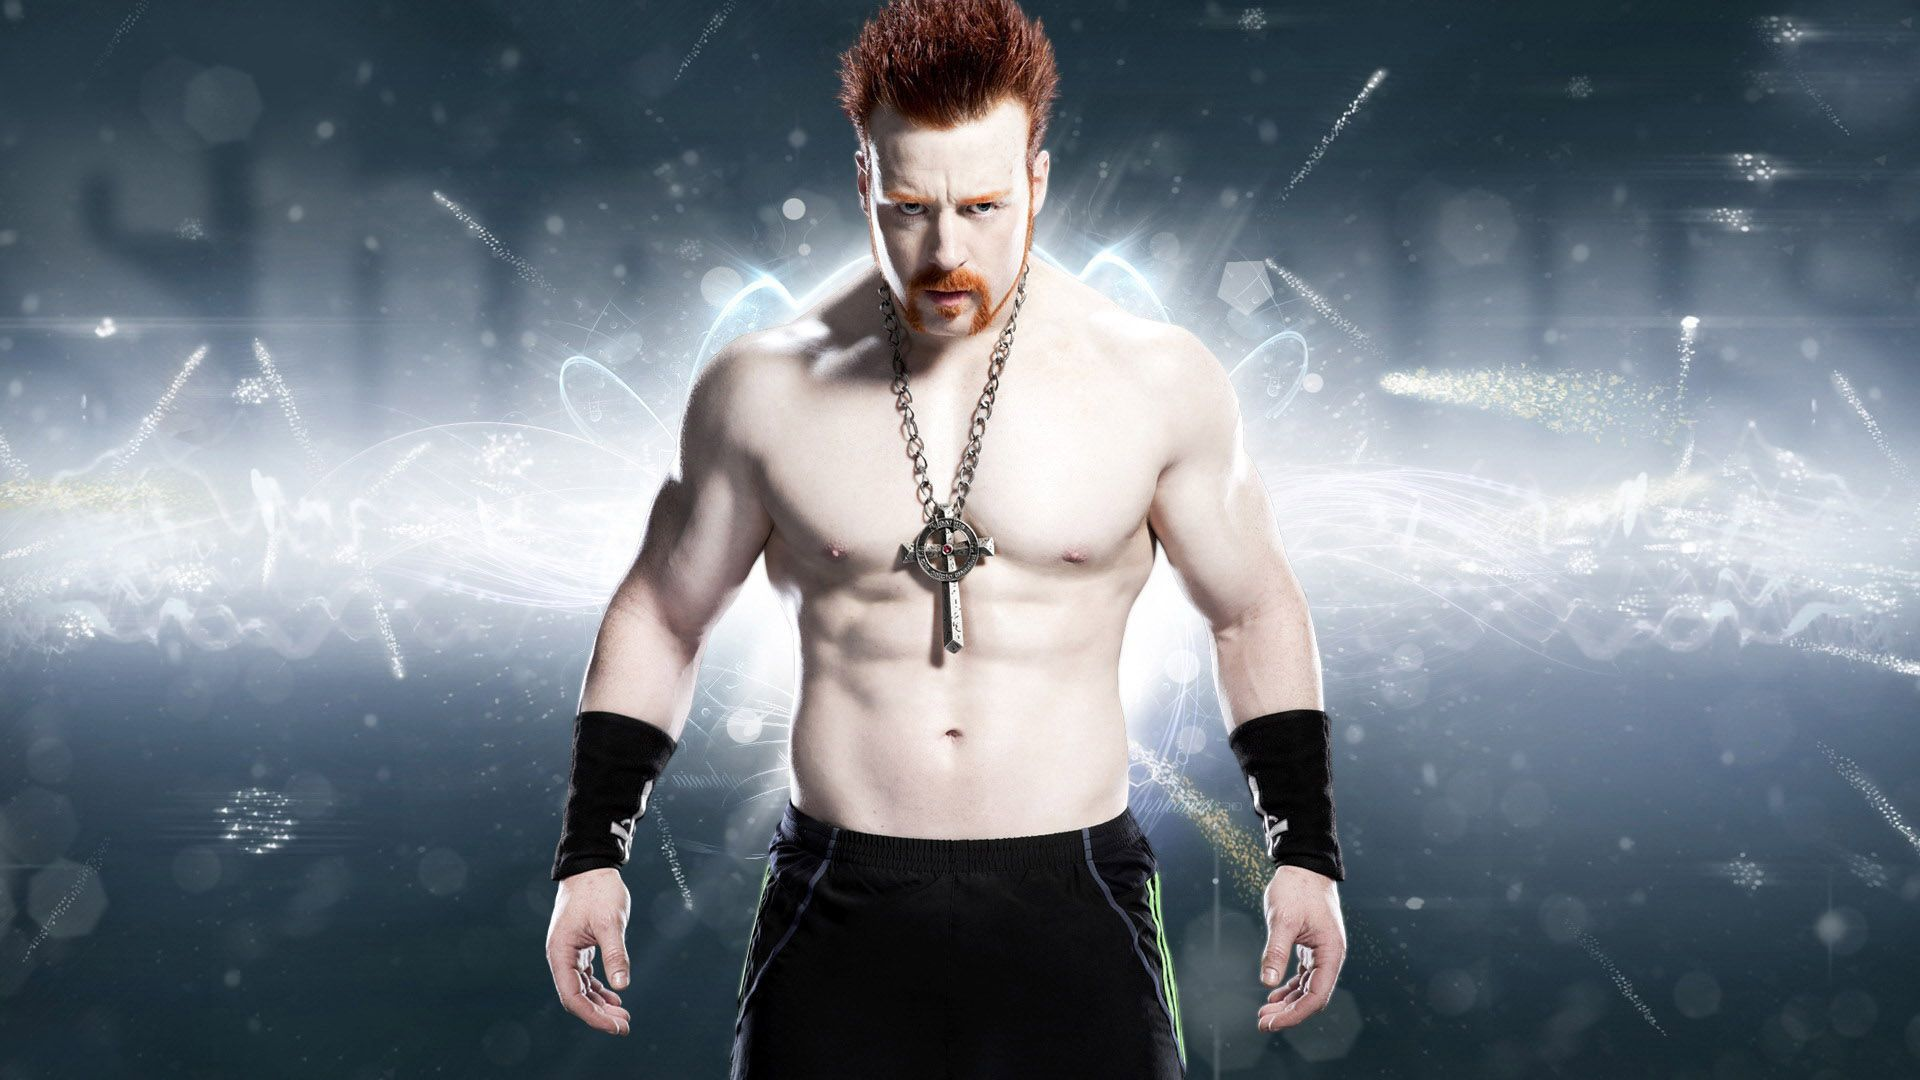 Wwe HD Wallpaper 2014